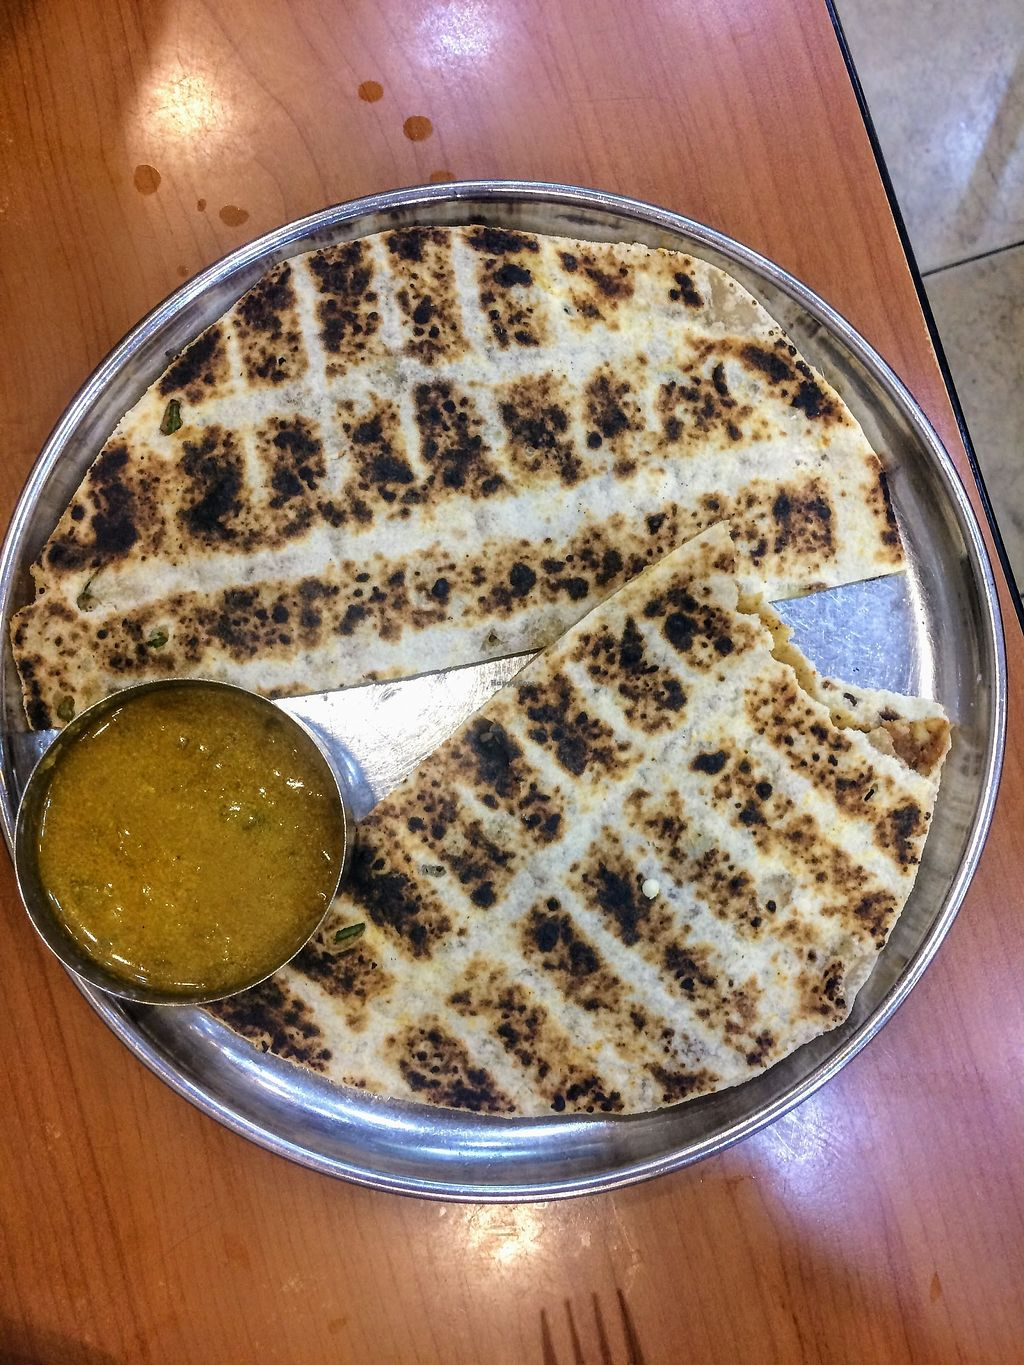 """Photo of Bakti Woodlands Vegetarian Food Cafe  by <a href=""""/members/profile/LaurenceMontreuil"""">LaurenceMontreuil</a> <br/>Aloo paratha <br/> February 19, 2018  - <a href='/contact/abuse/image/9451/361306'>Report</a>"""